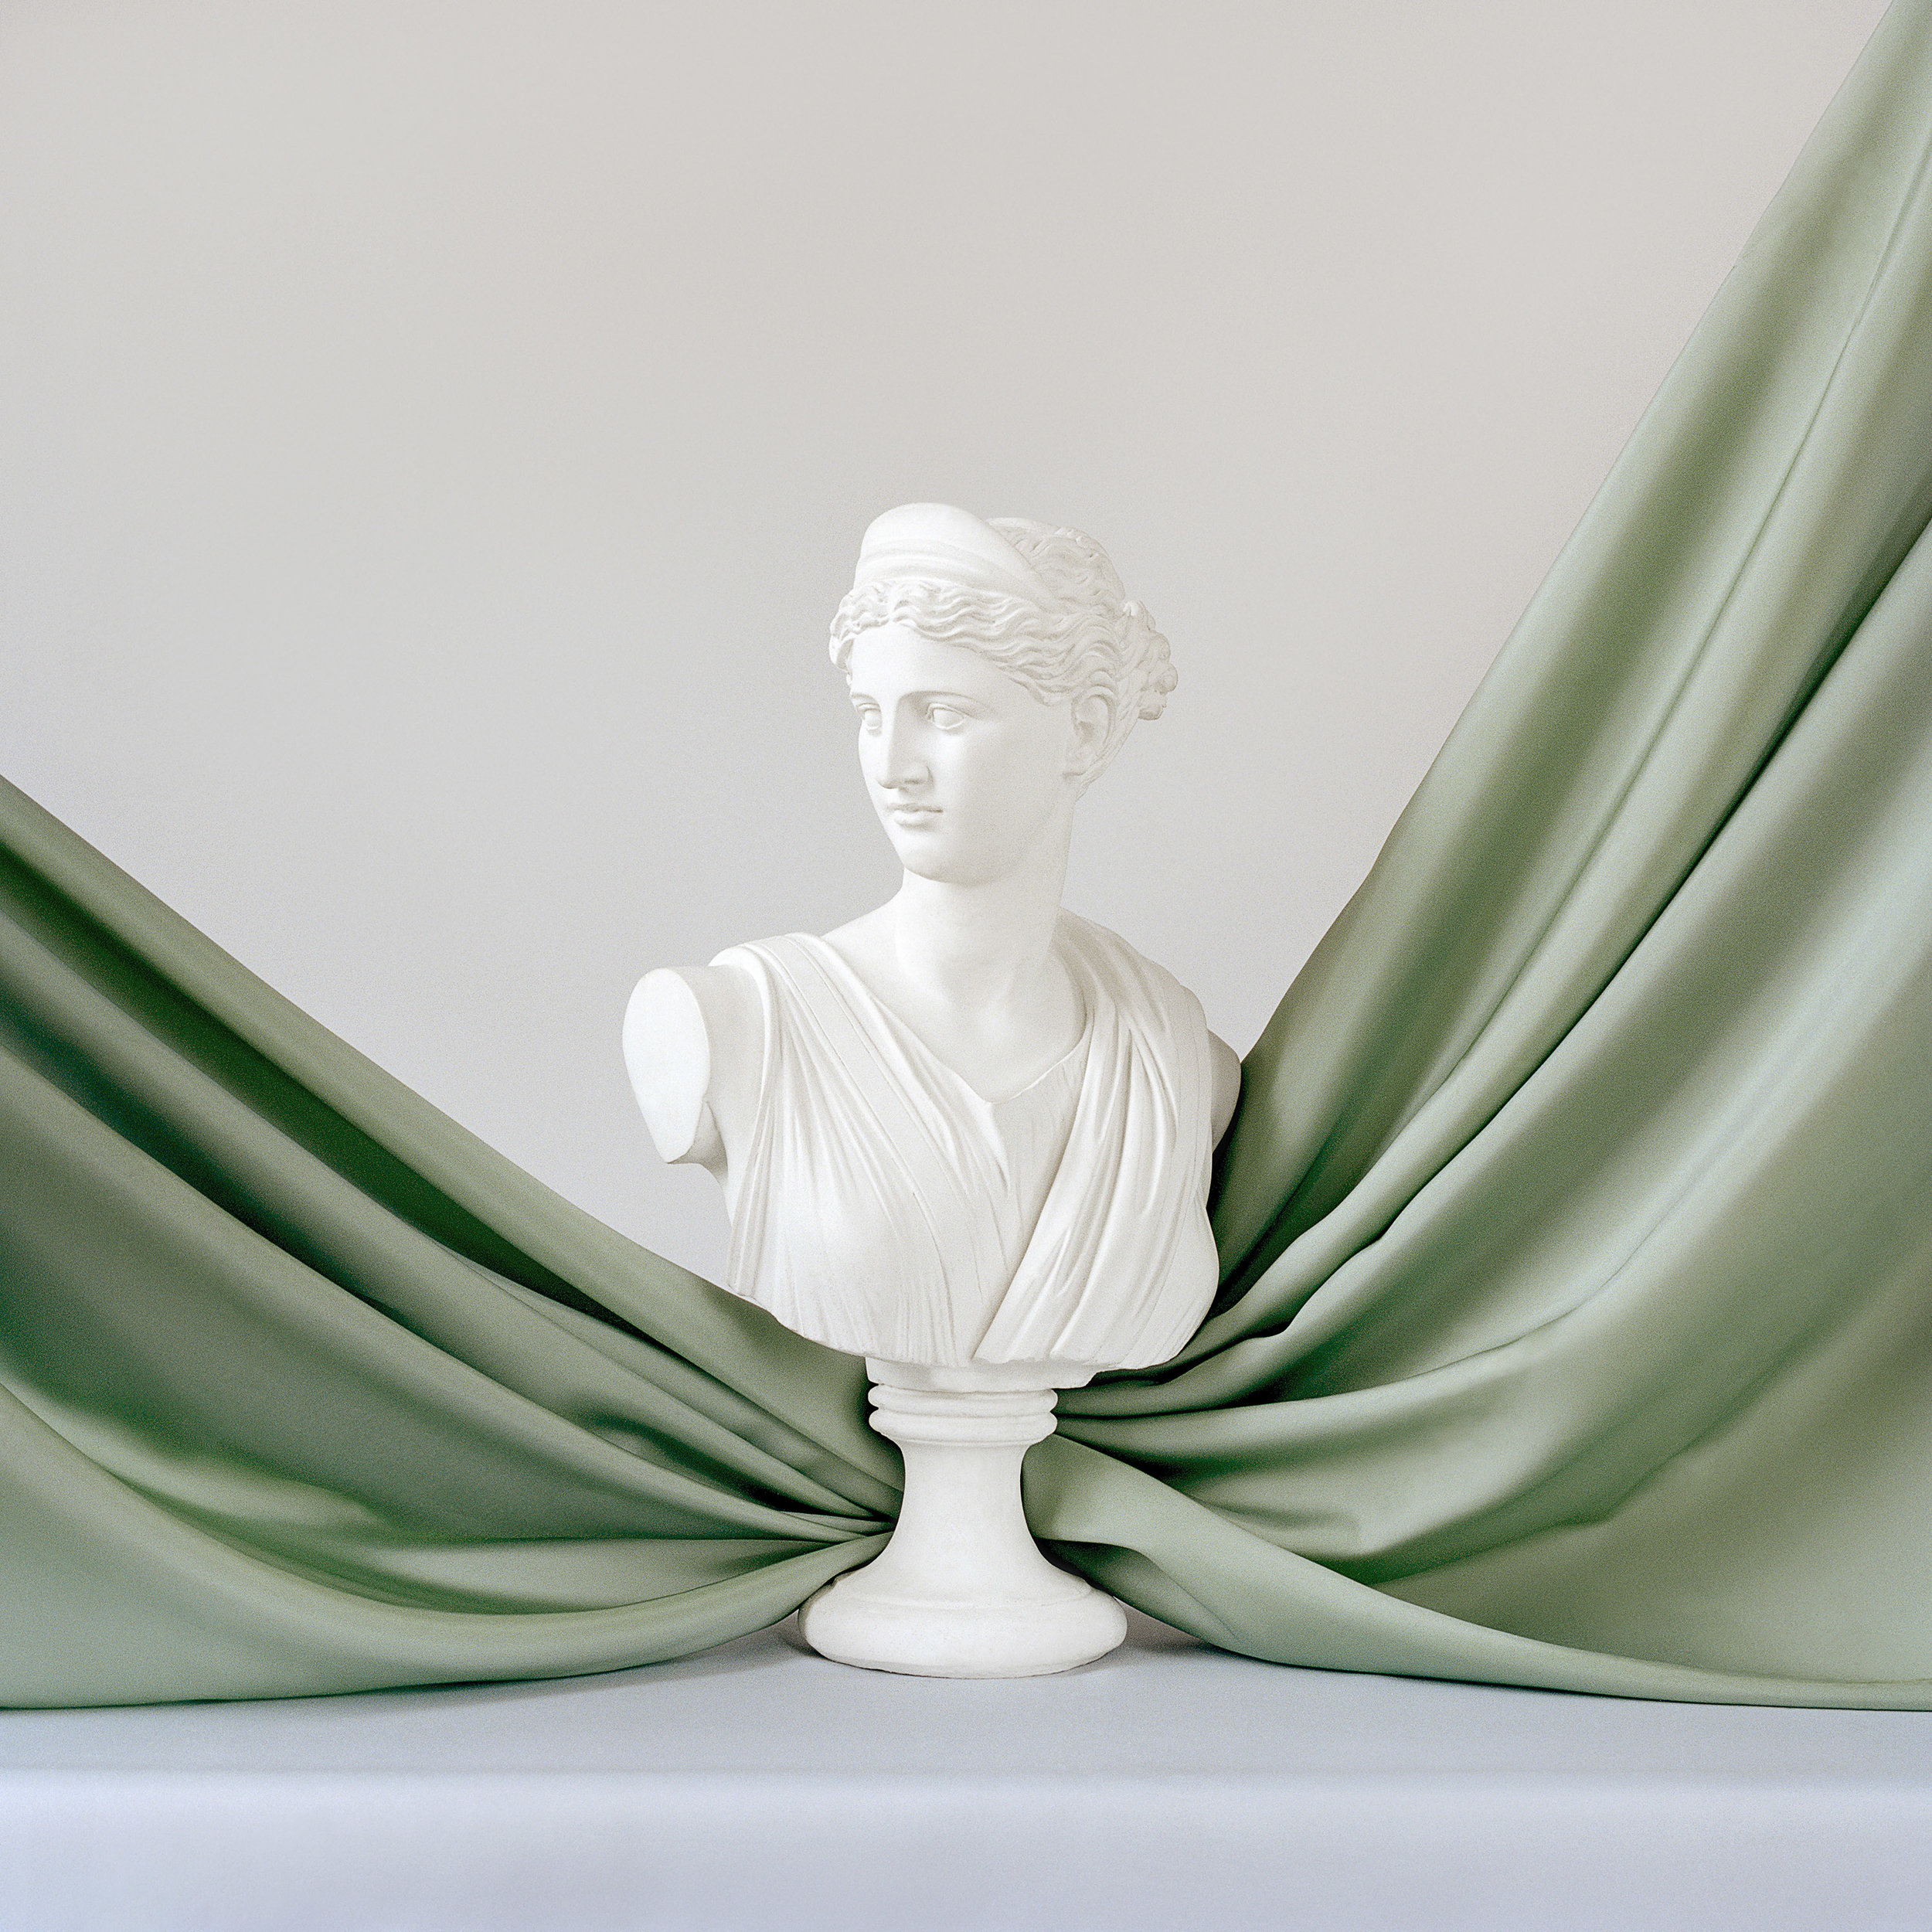 The Beauty of History,  2010 by Petrina Hicks from the  Every Rose has its Thorn  series.